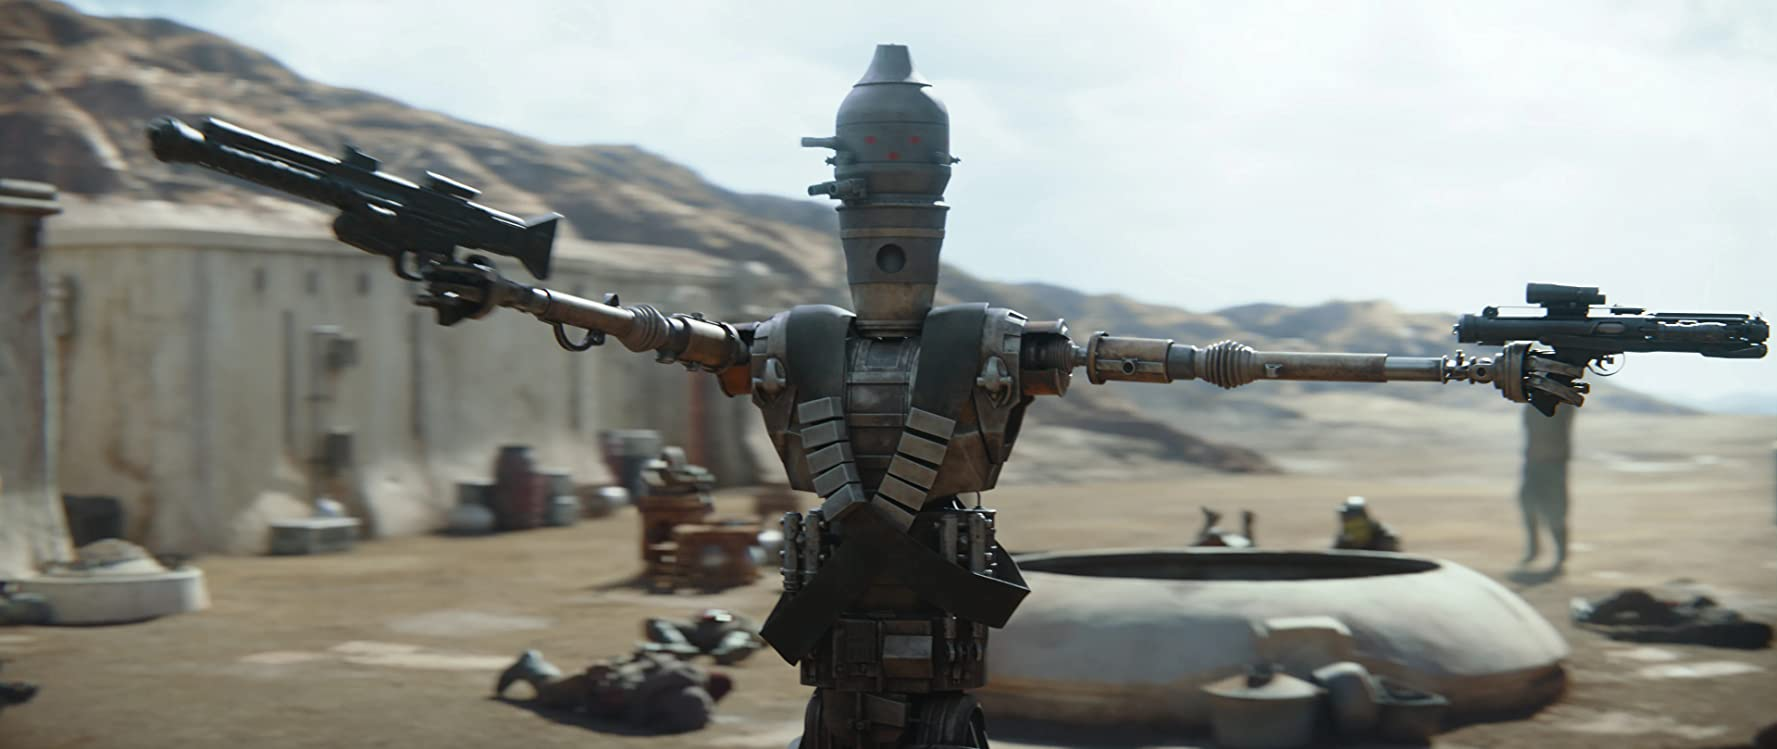 Taika Waititi and Rio Hackford in The Mandalorian (2019)